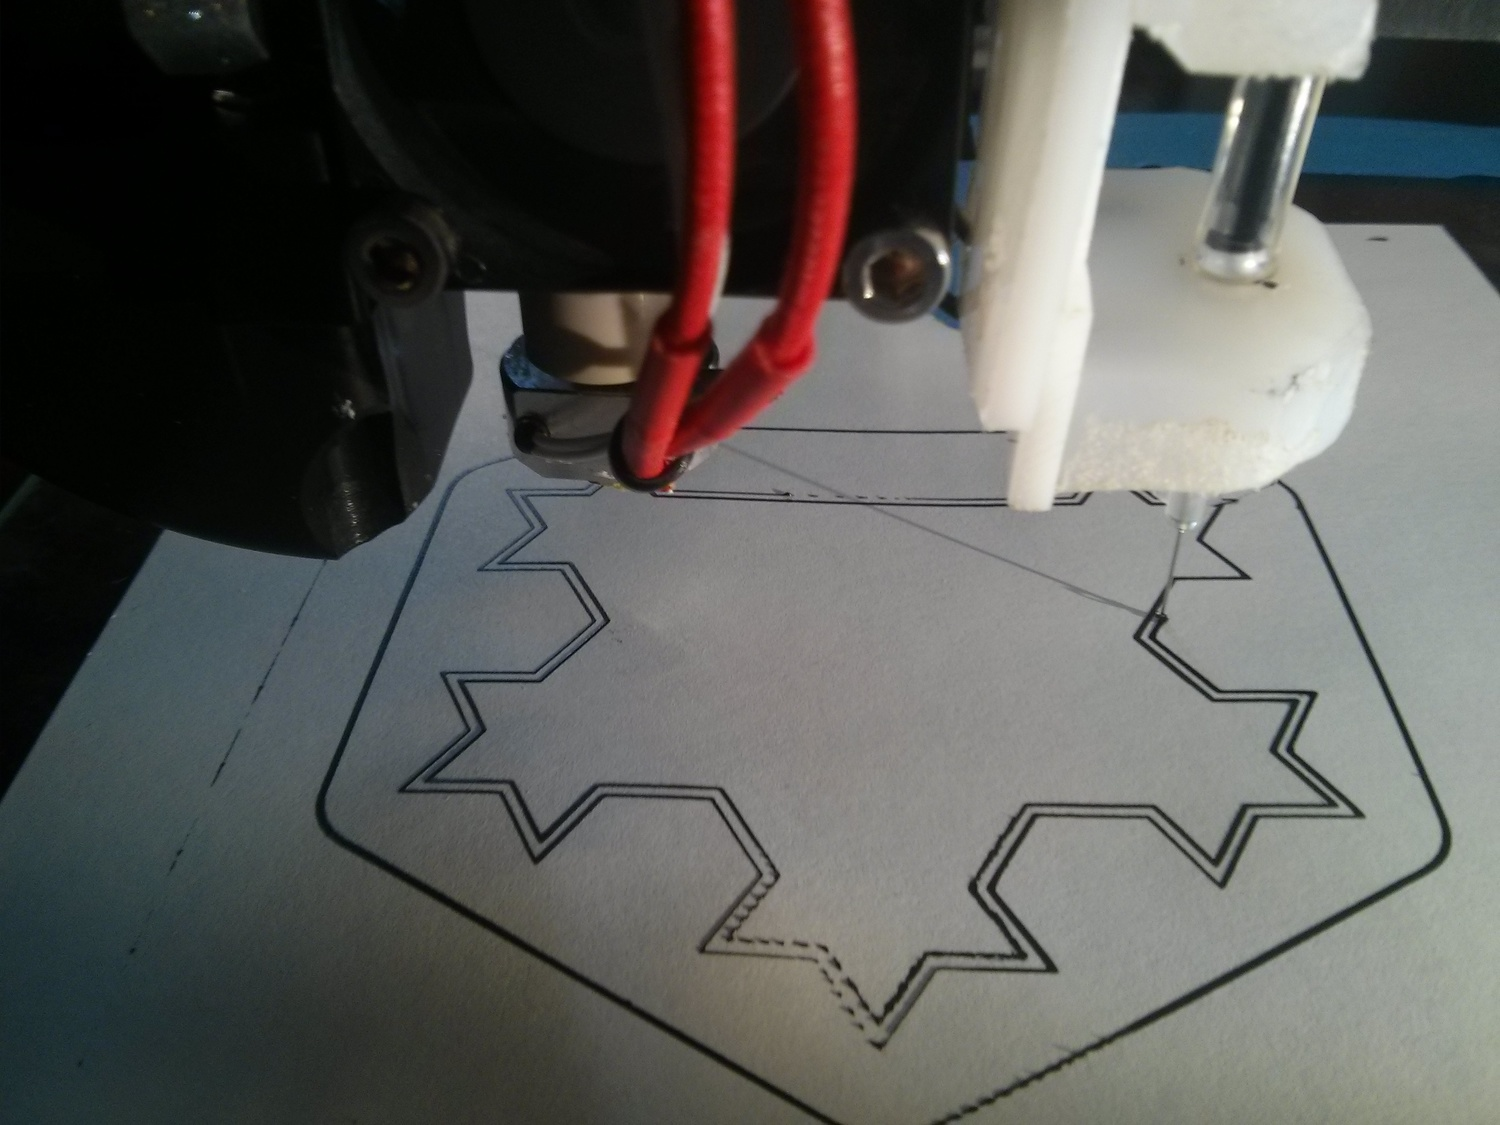 How To Print A Fractal Antenna With Bare Conductive Electric Paint Structur3d Io Disrupting The Status Quo